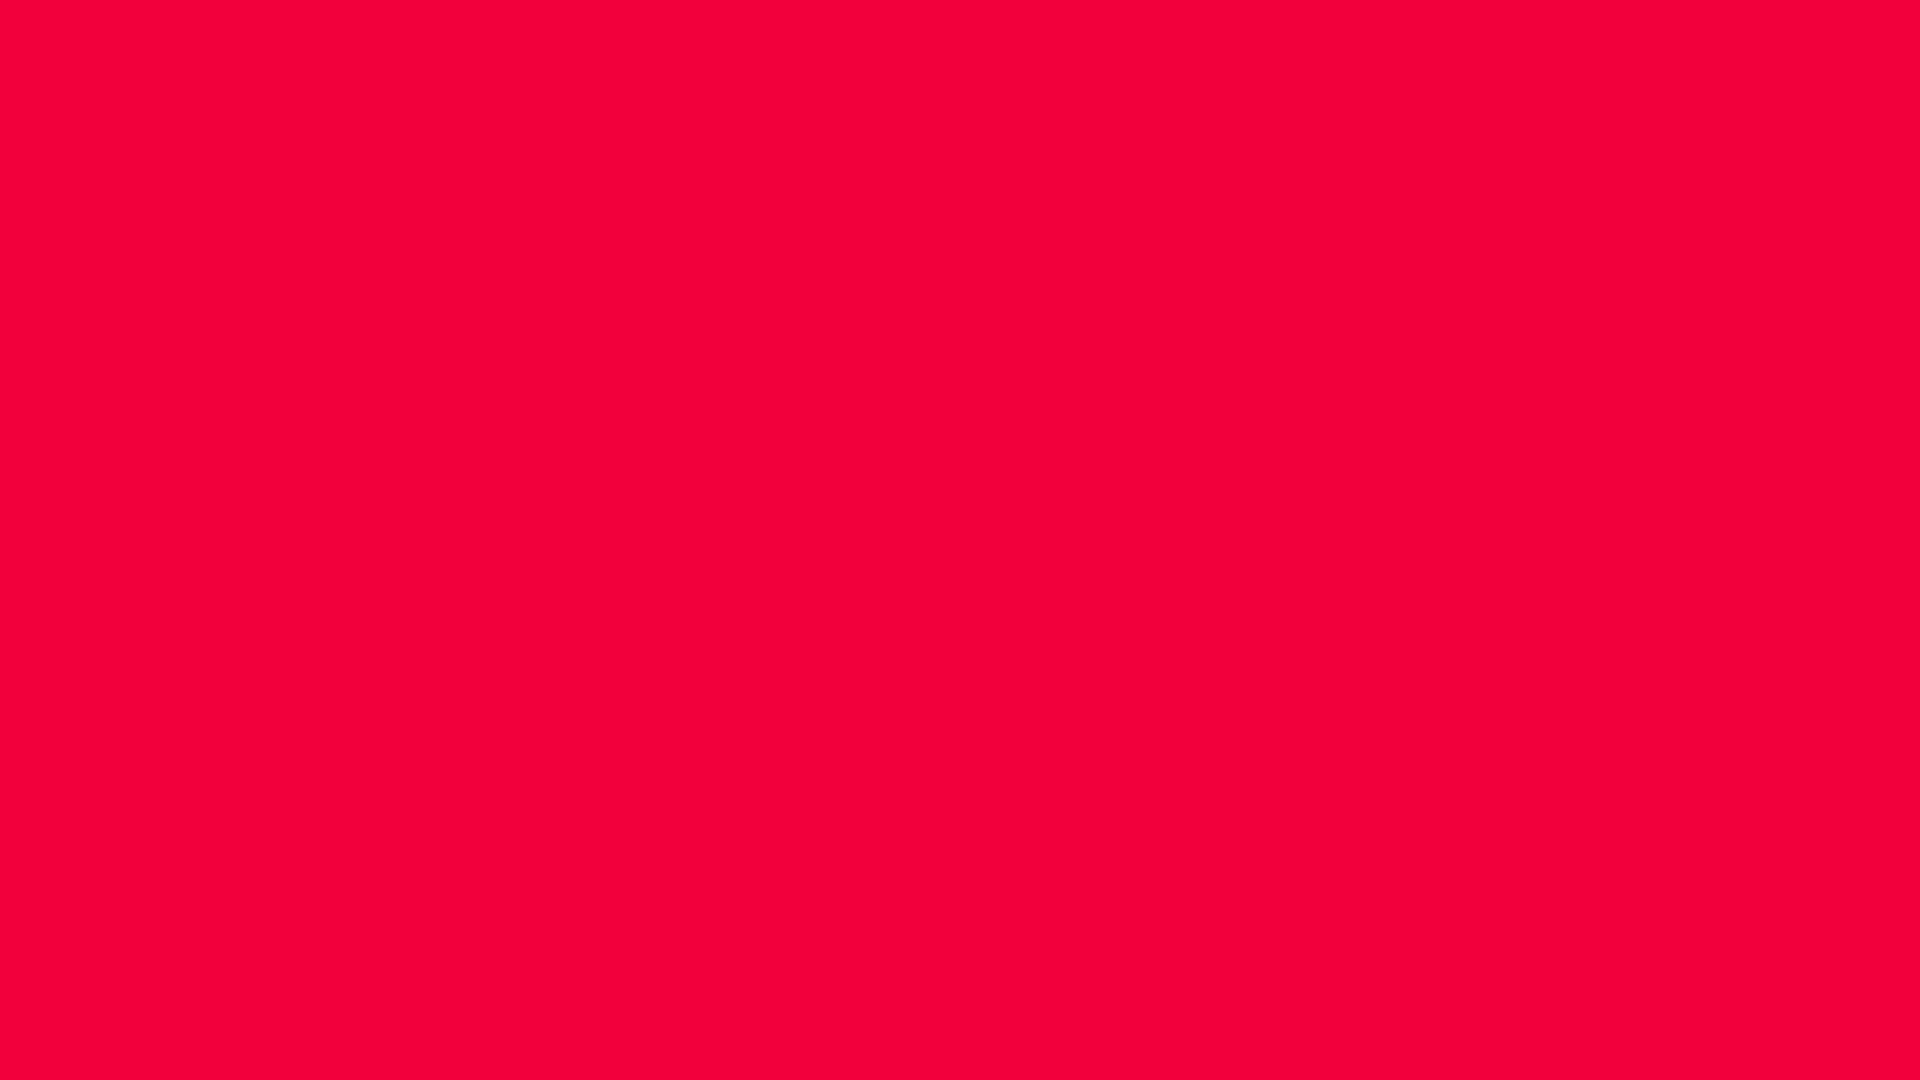 1920x1080 Red Munsell Solid Color Background